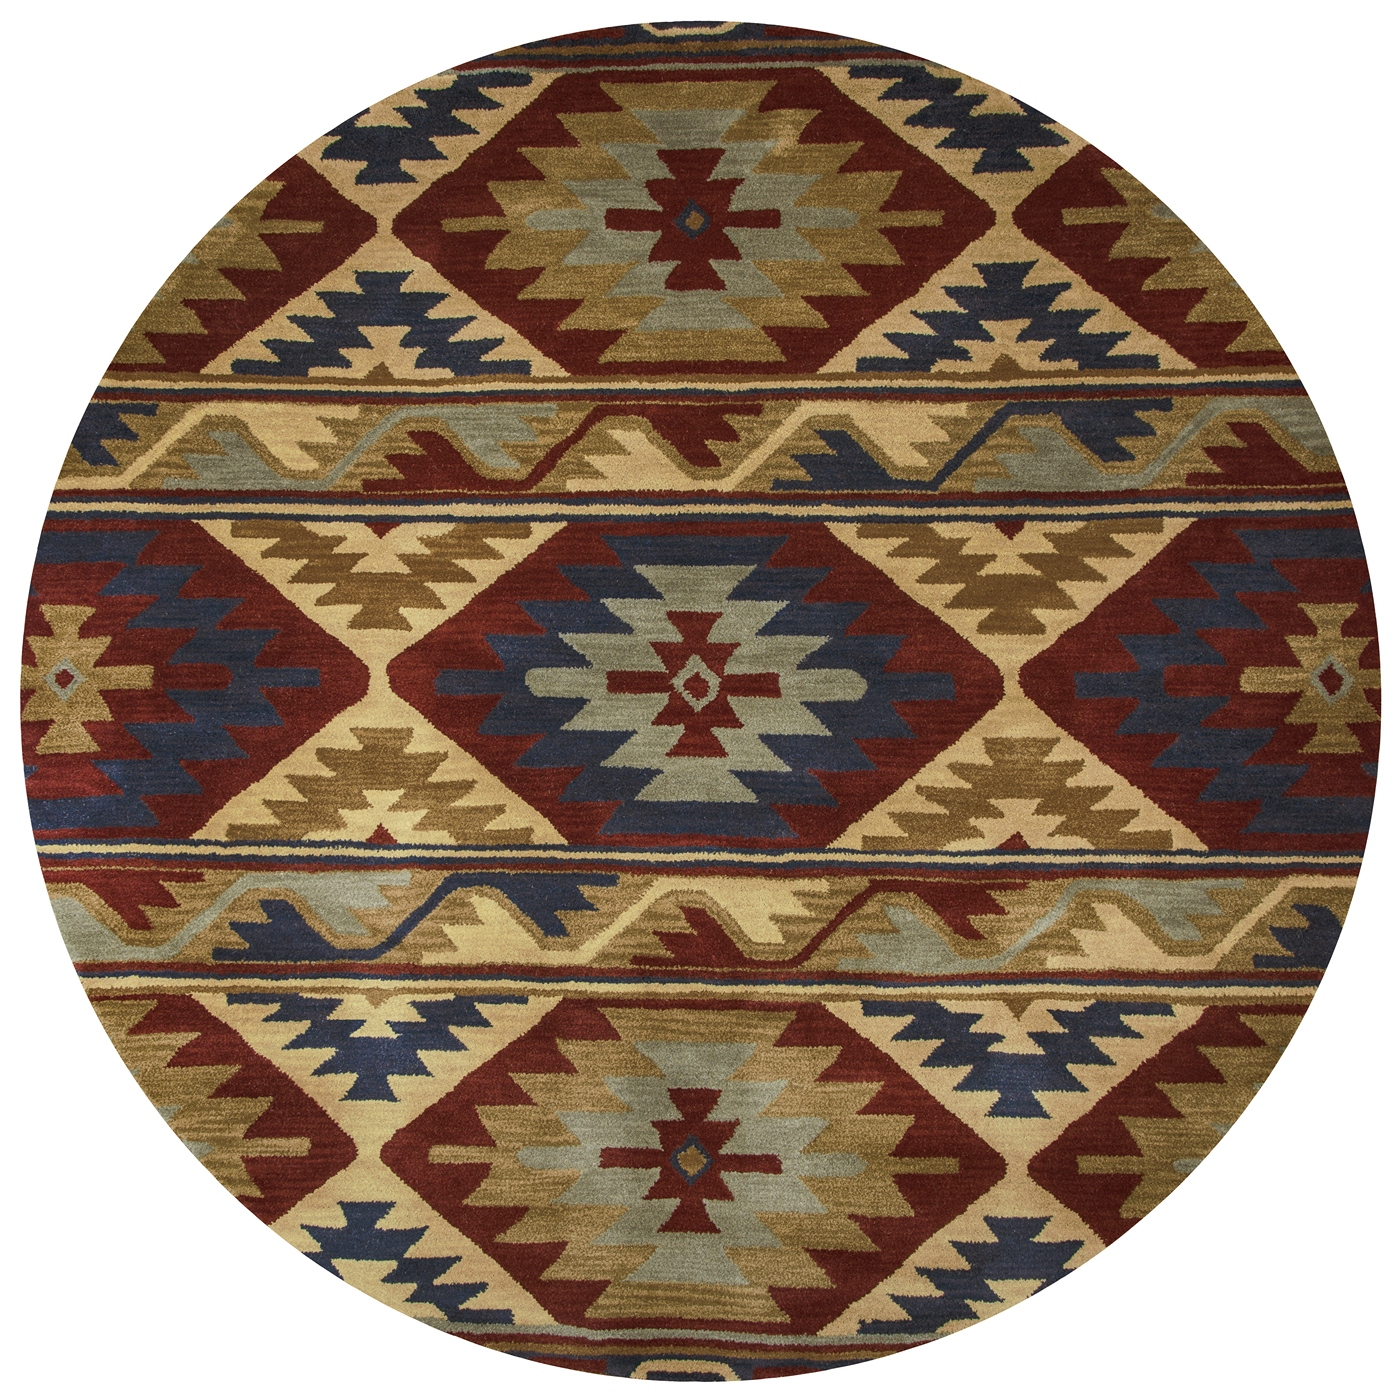 Southwest Southwest Motif Wool Round Rug In Red Navy Gray